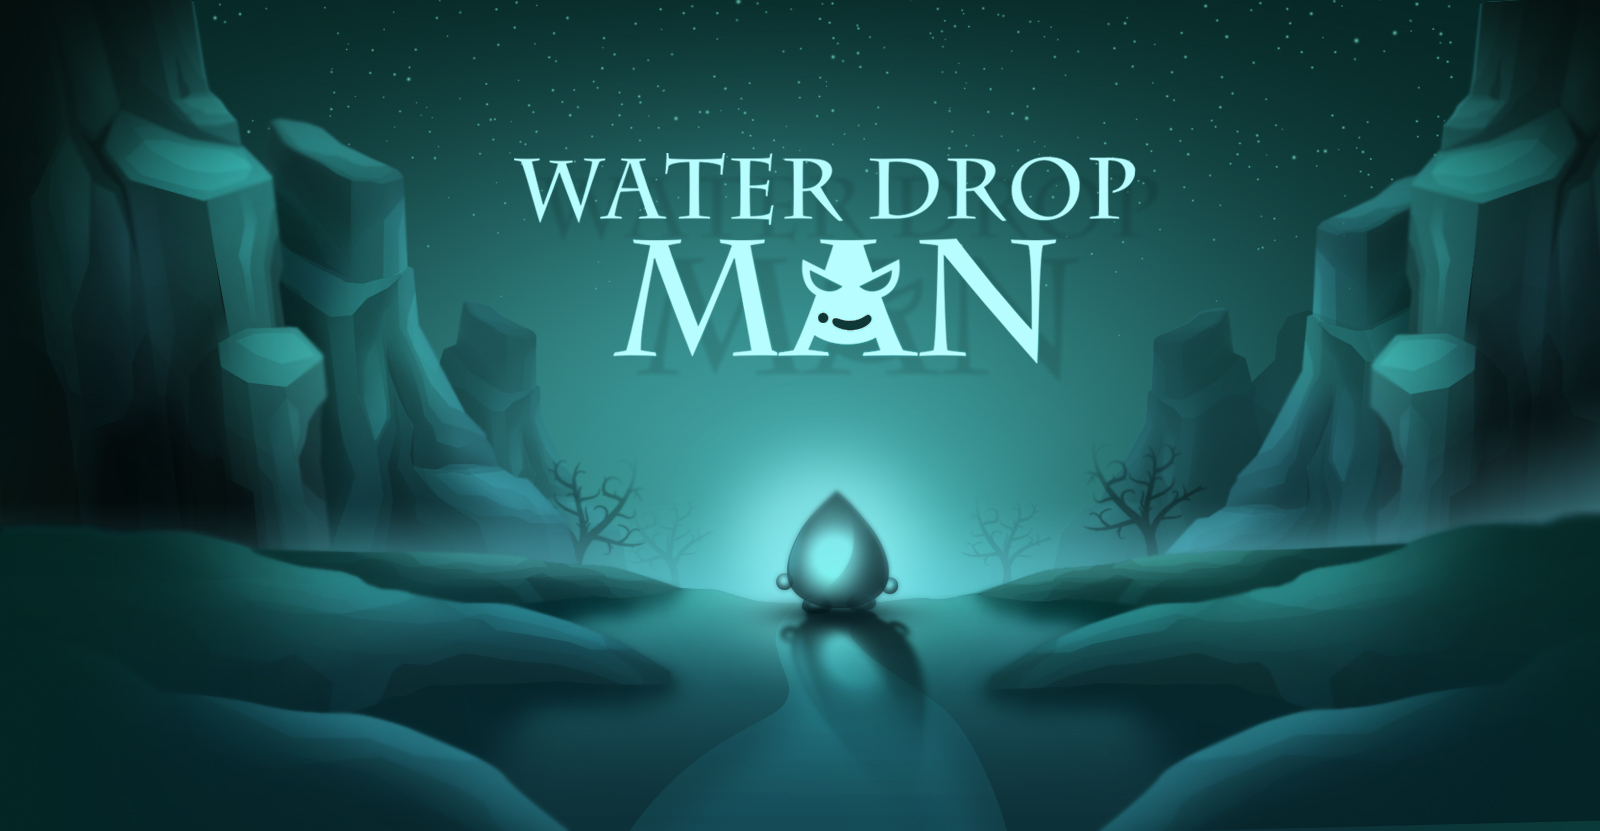 The second round test activity for Water Drop Man is start ...